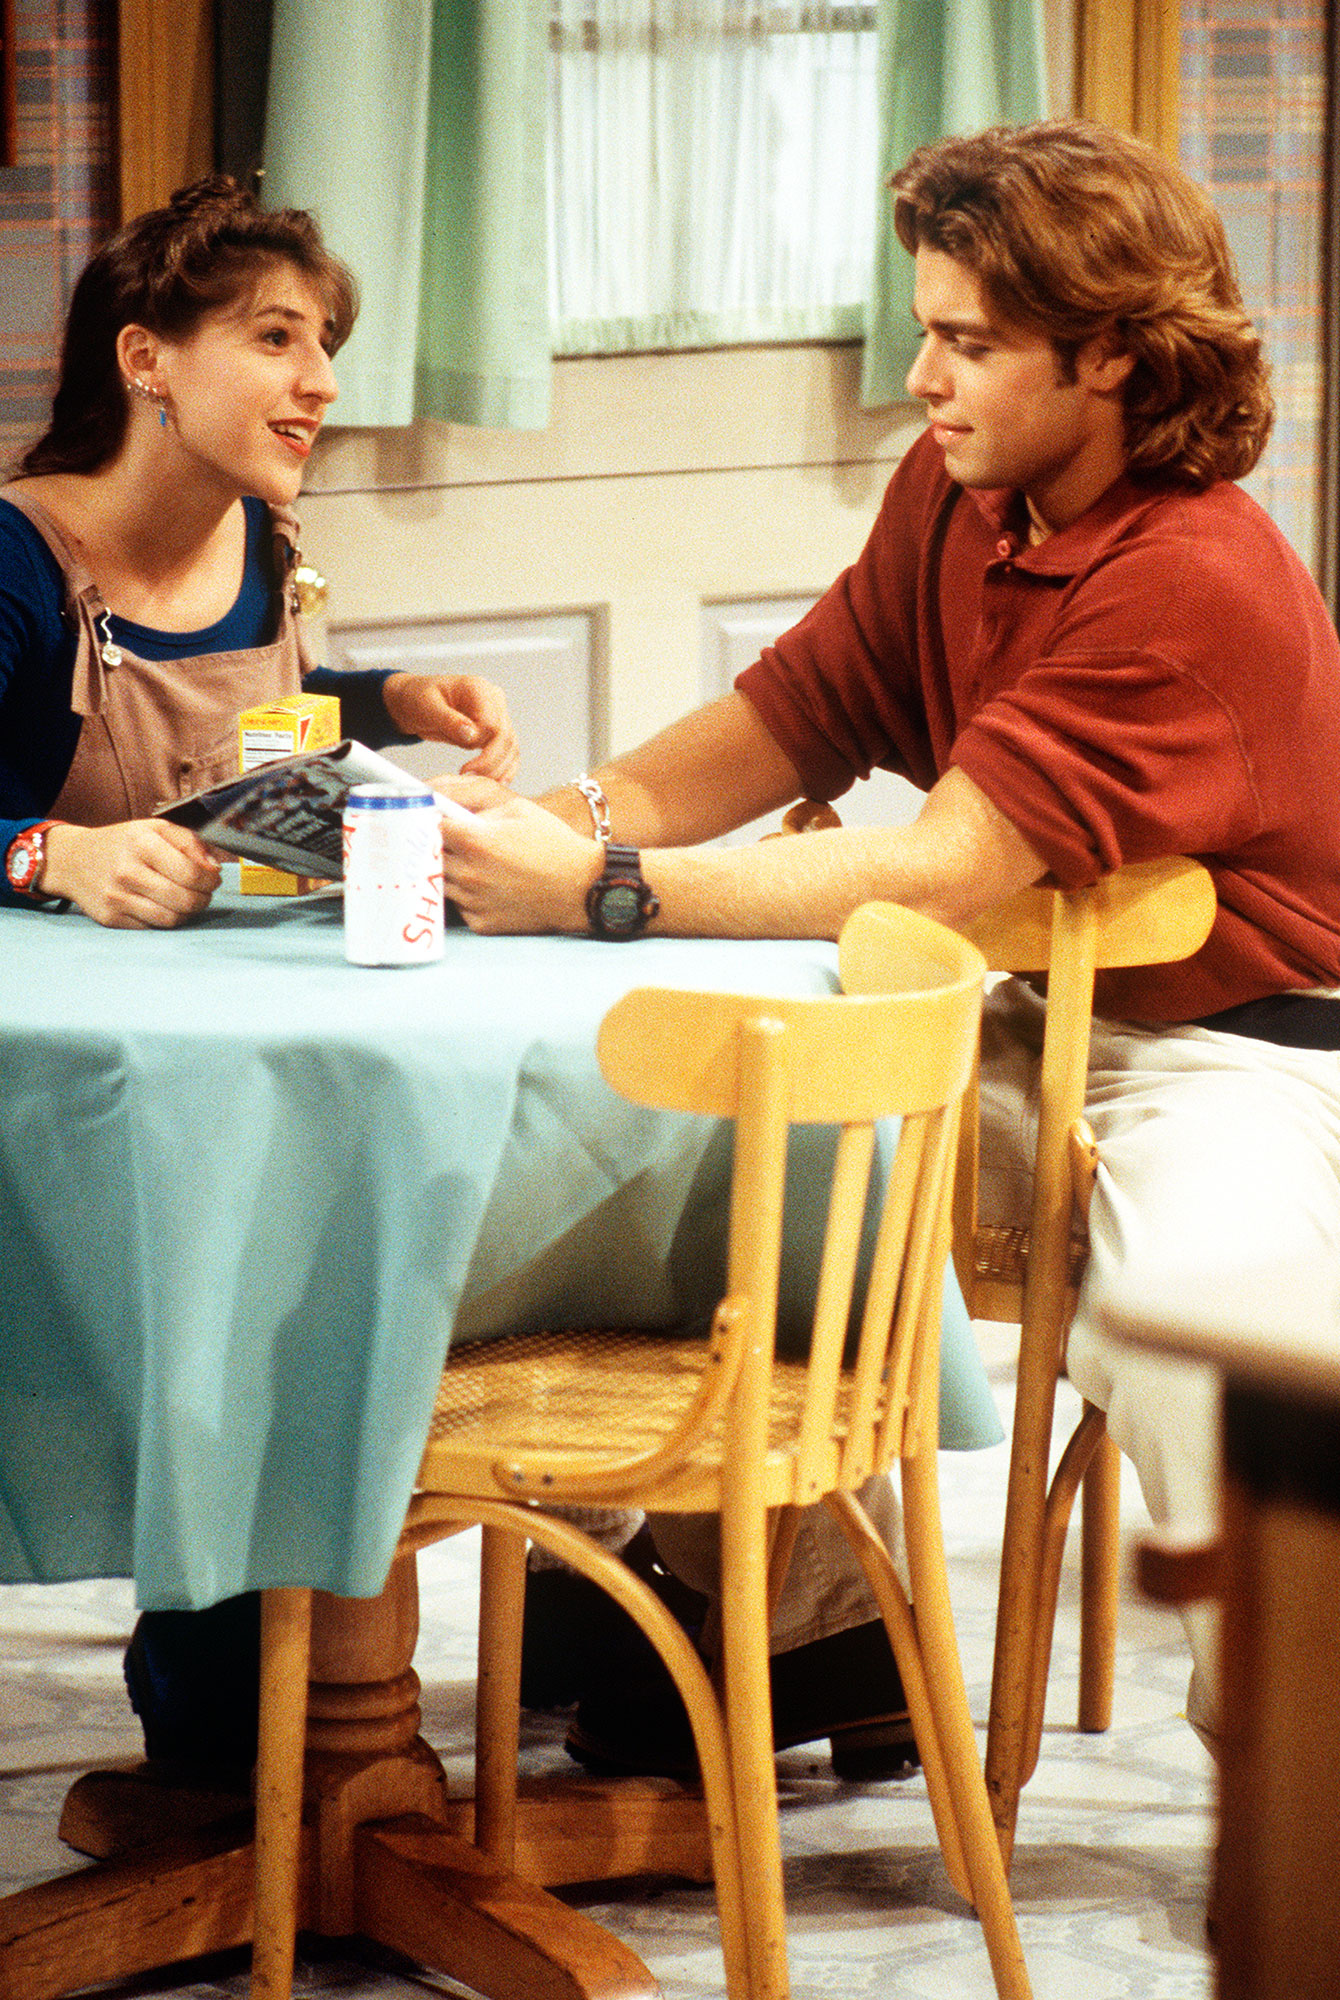 Mayim Bialik Did Not Steal From Set Blossom - Mayim Bialik and Joey Lawrence during a season five episode of 'Blossom.